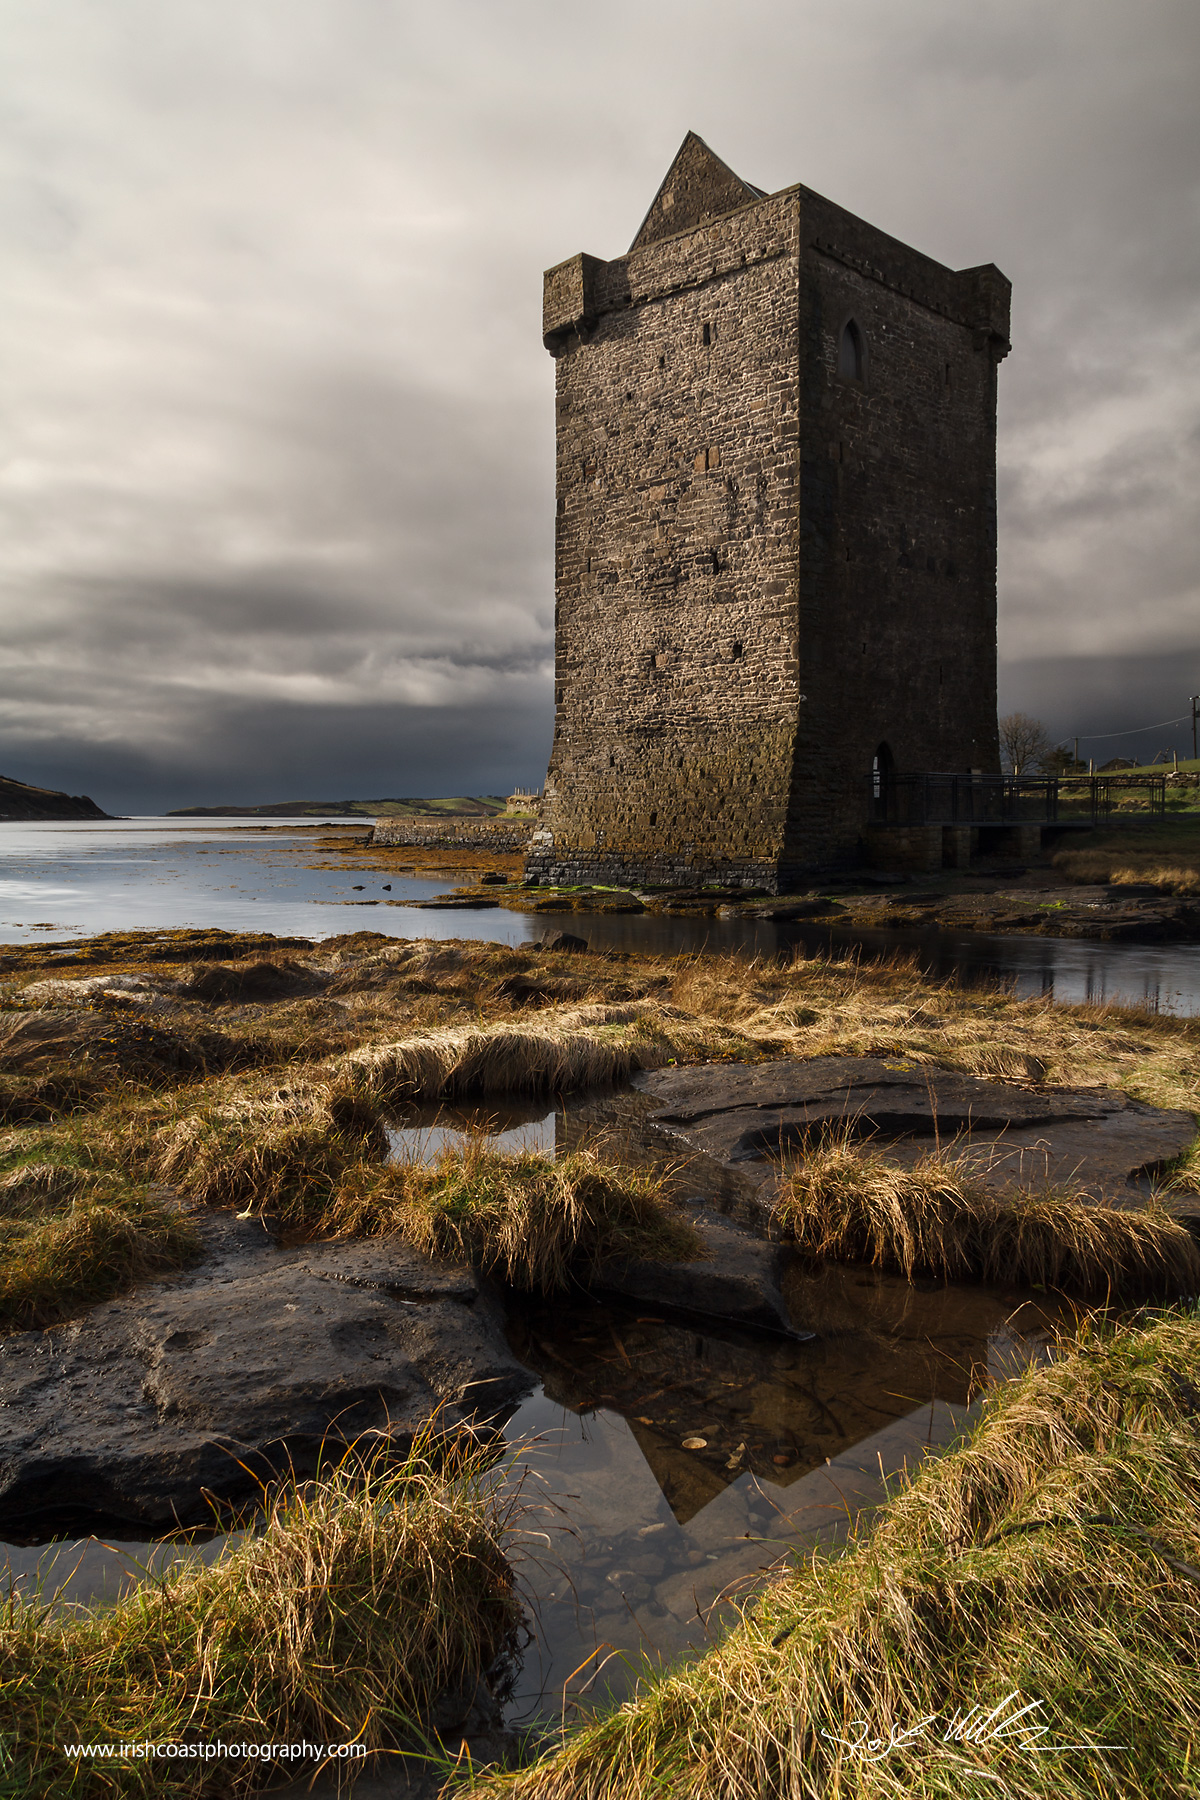 Rockfleet Castle, one of the Pirate Queen Grace O'Malley's premises near Newport, Co. Mayo